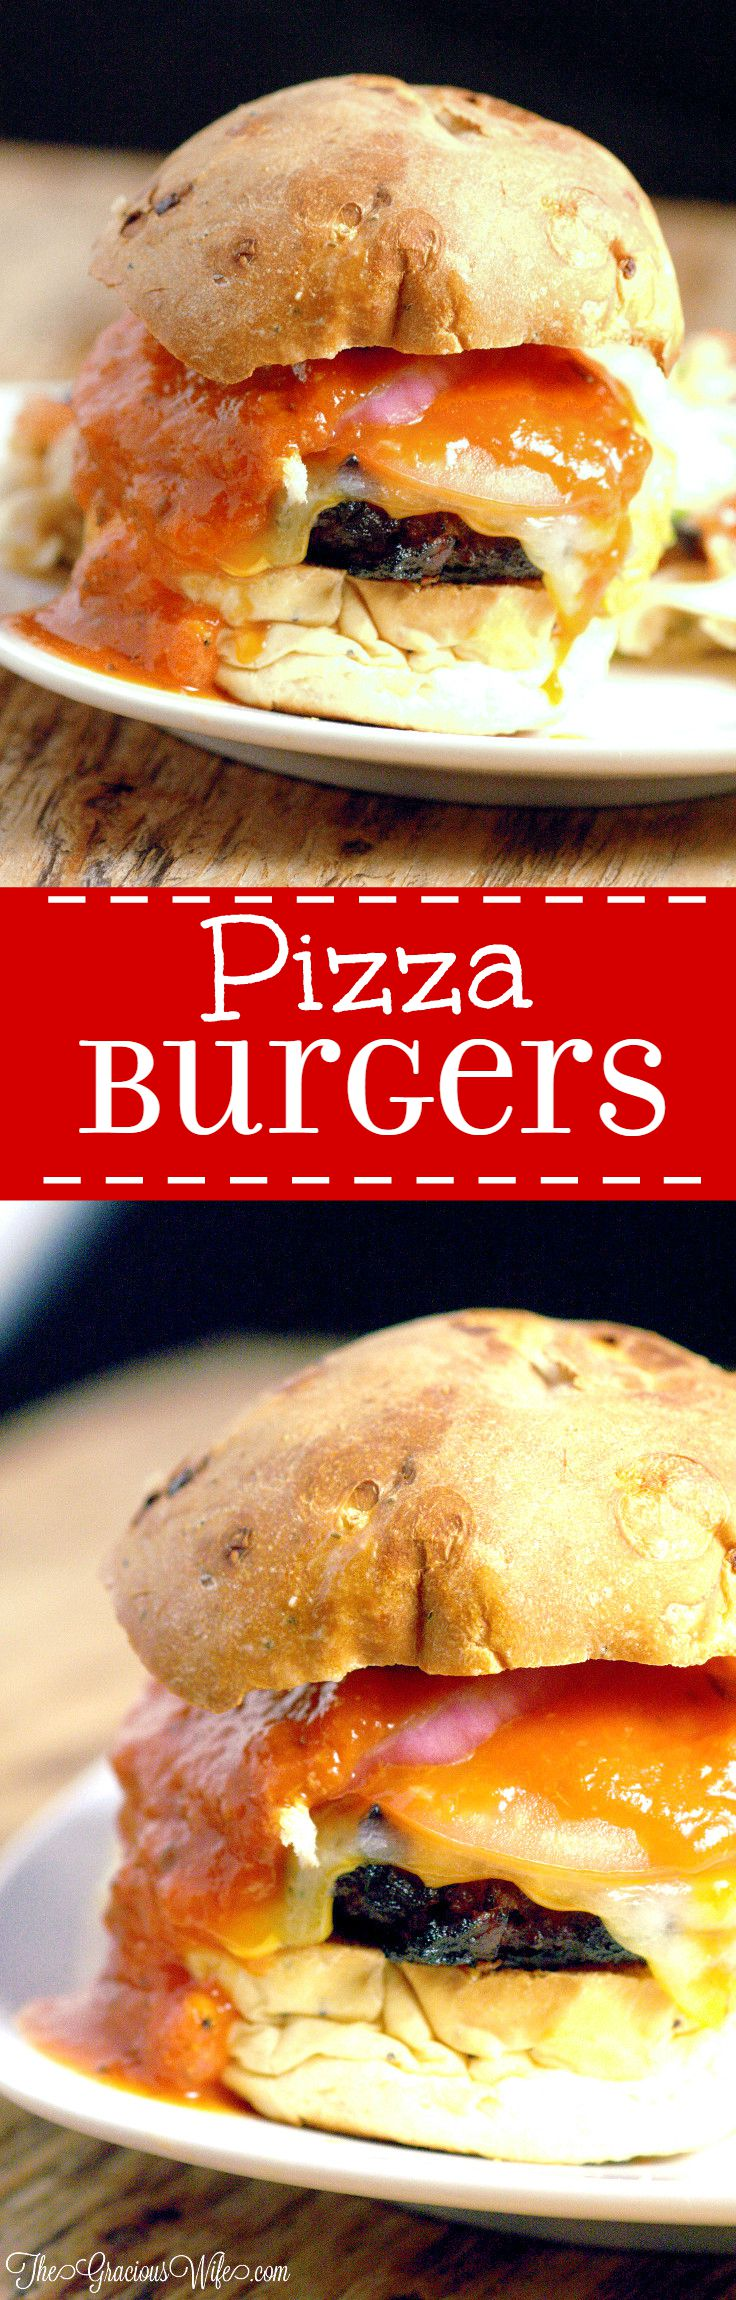 Pepperoni Pizza Cheeseburger Recipe - easy dinner idea recipe perfect for summer and grilling for the whole family. A fun twist on your traditional hamburgers with tasty ingredients including pepperoni, pizza sauce, Italian seasonings, and lots of gooey, melty cheese. Oh my! These sound amazing!